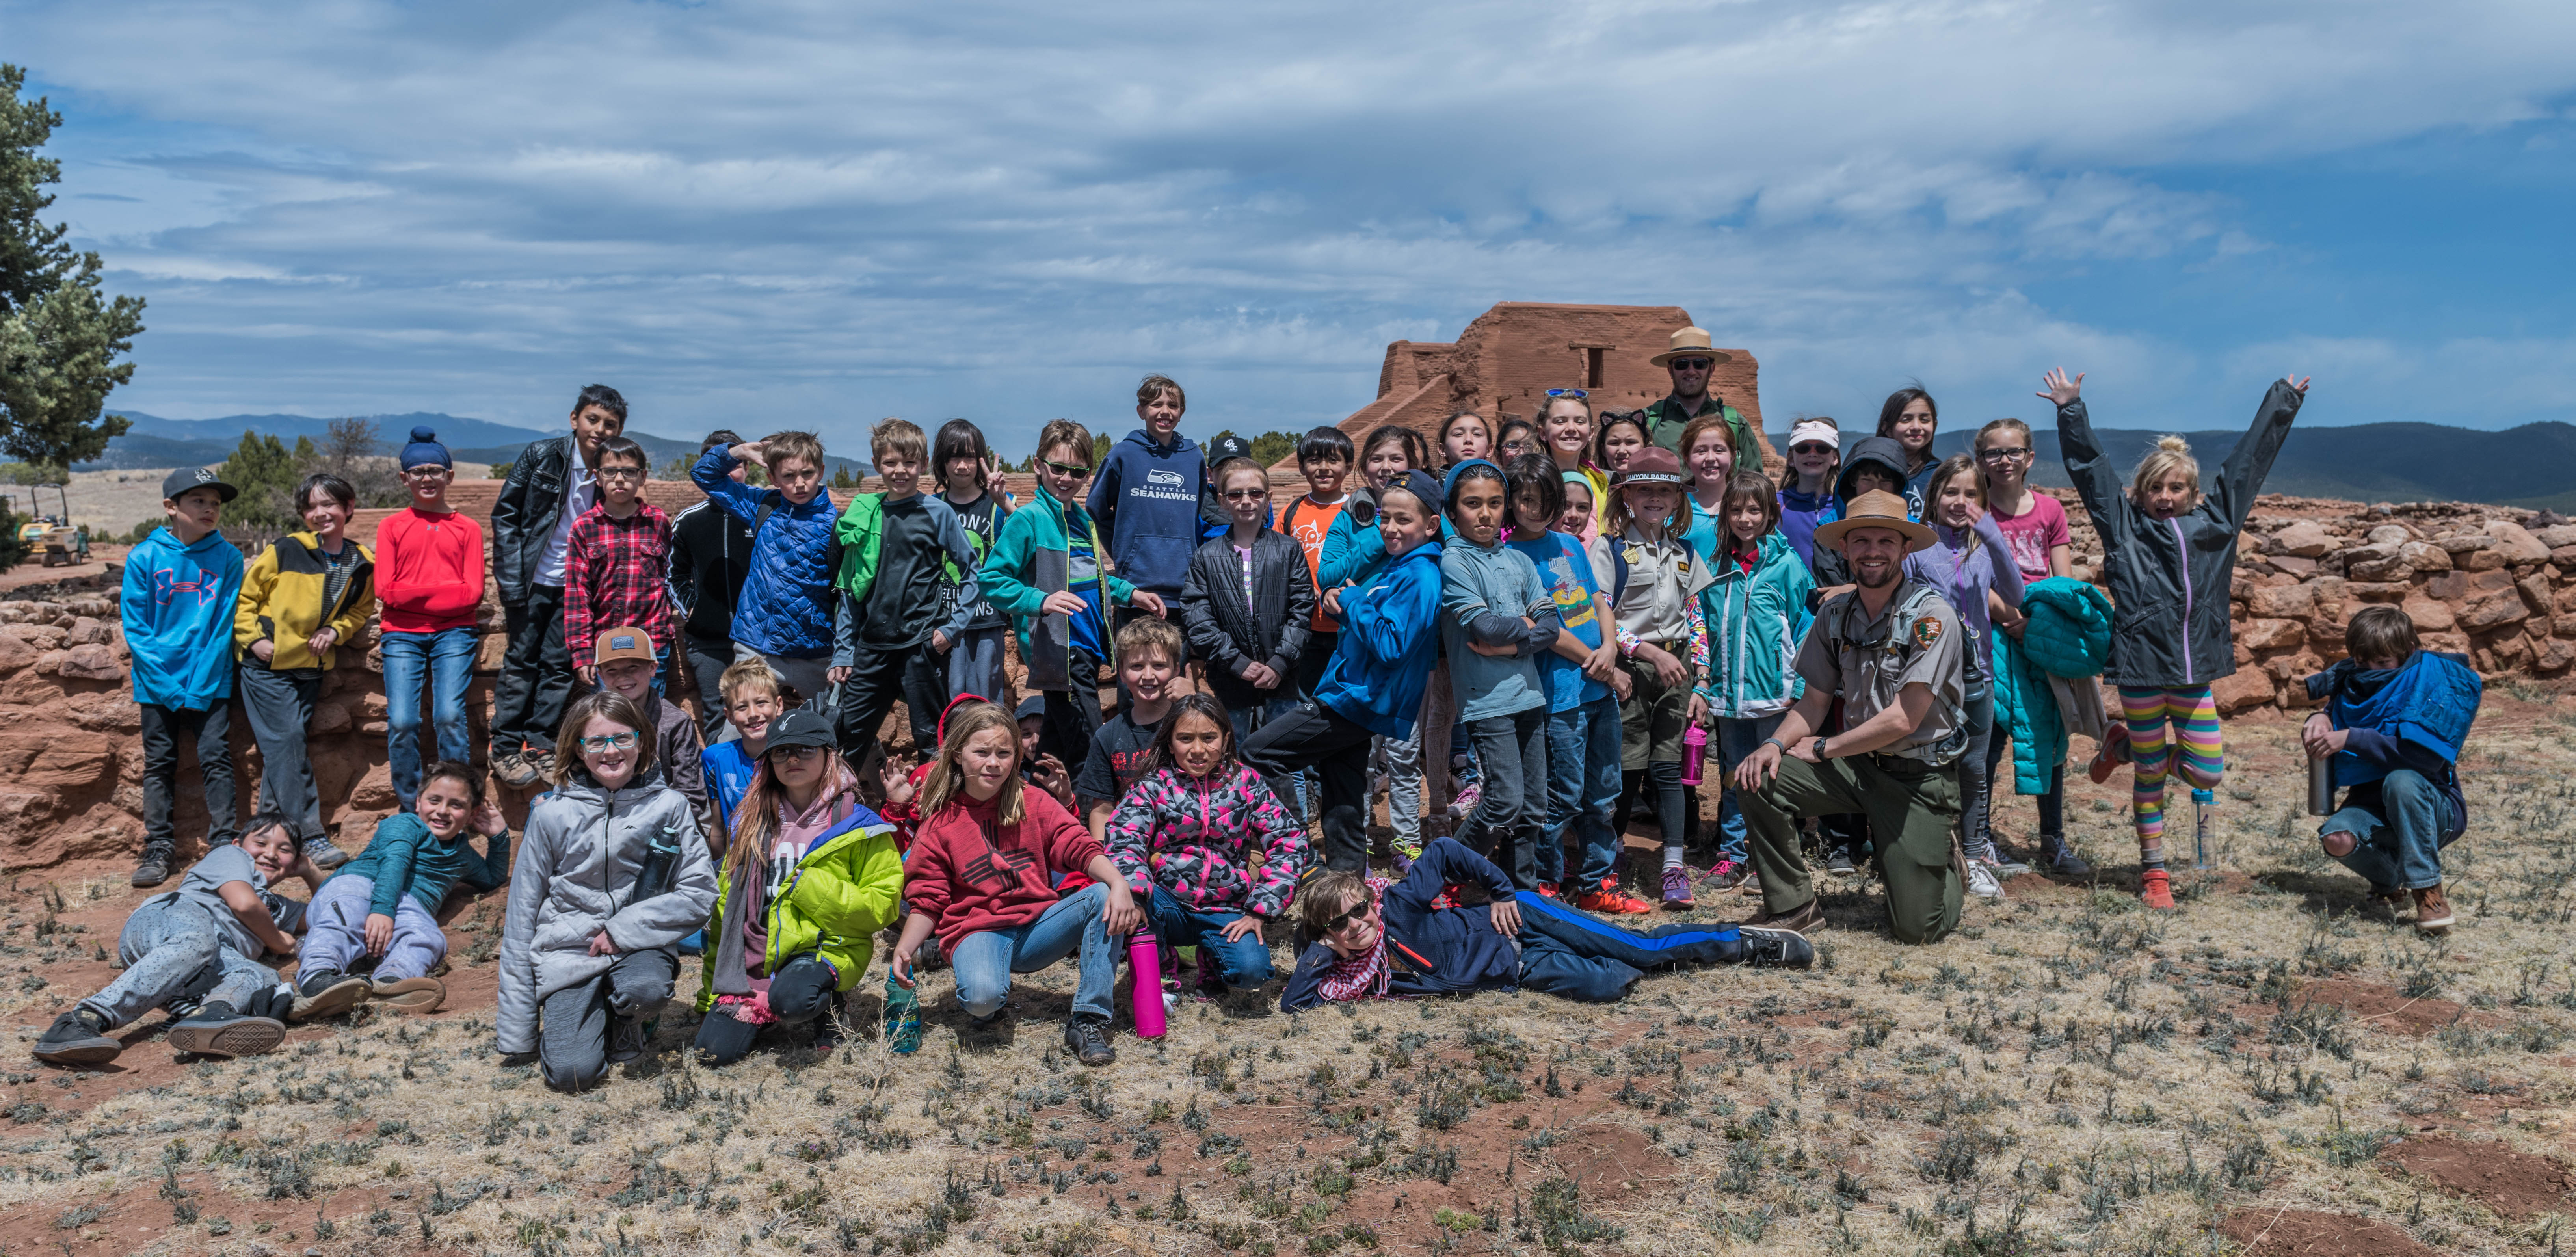 School kids celebrating a field trip to Pecos NHP with a class photo